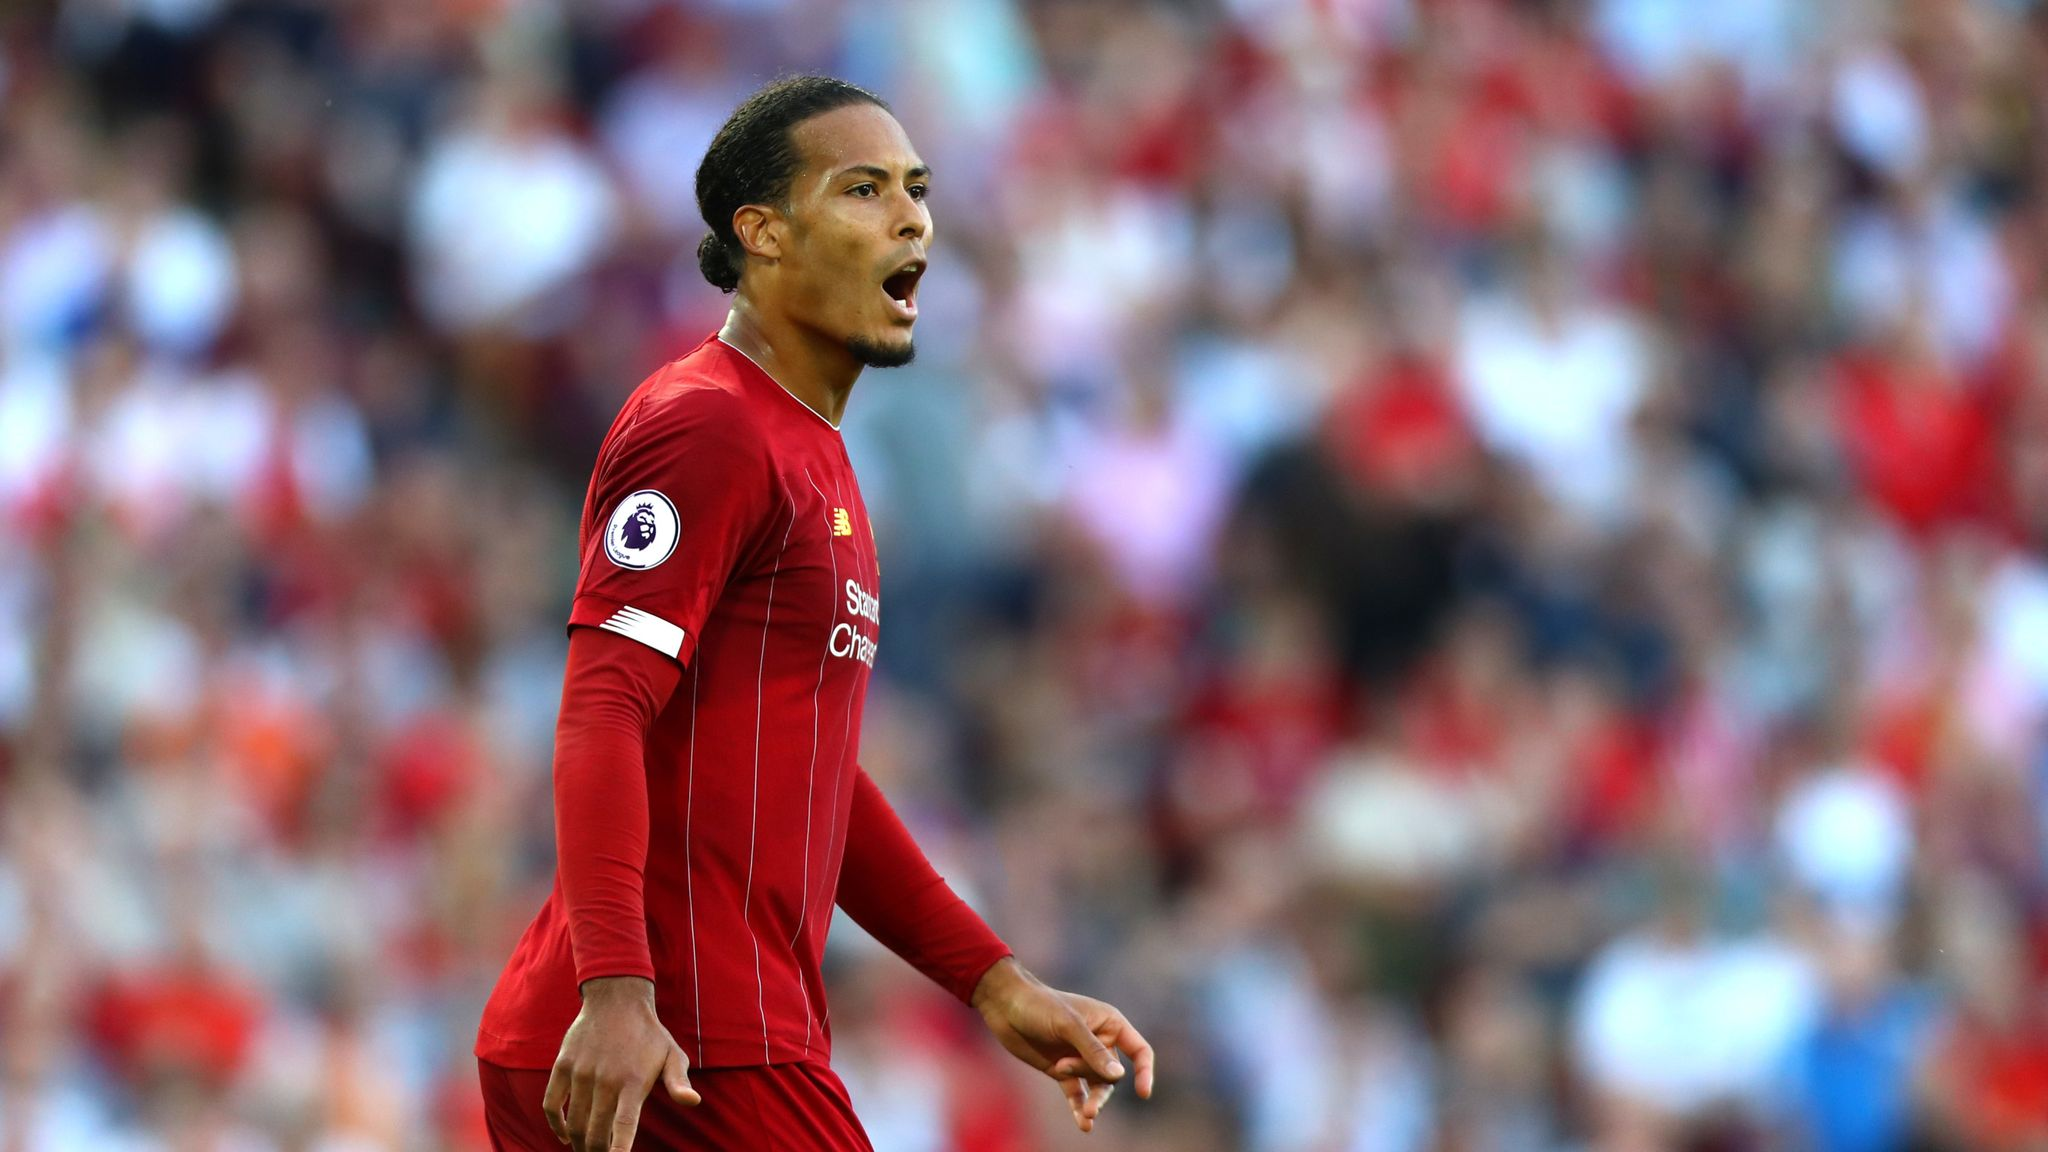 Virgil van Dijk: Liverpool have nothing to lose in Premier League title race